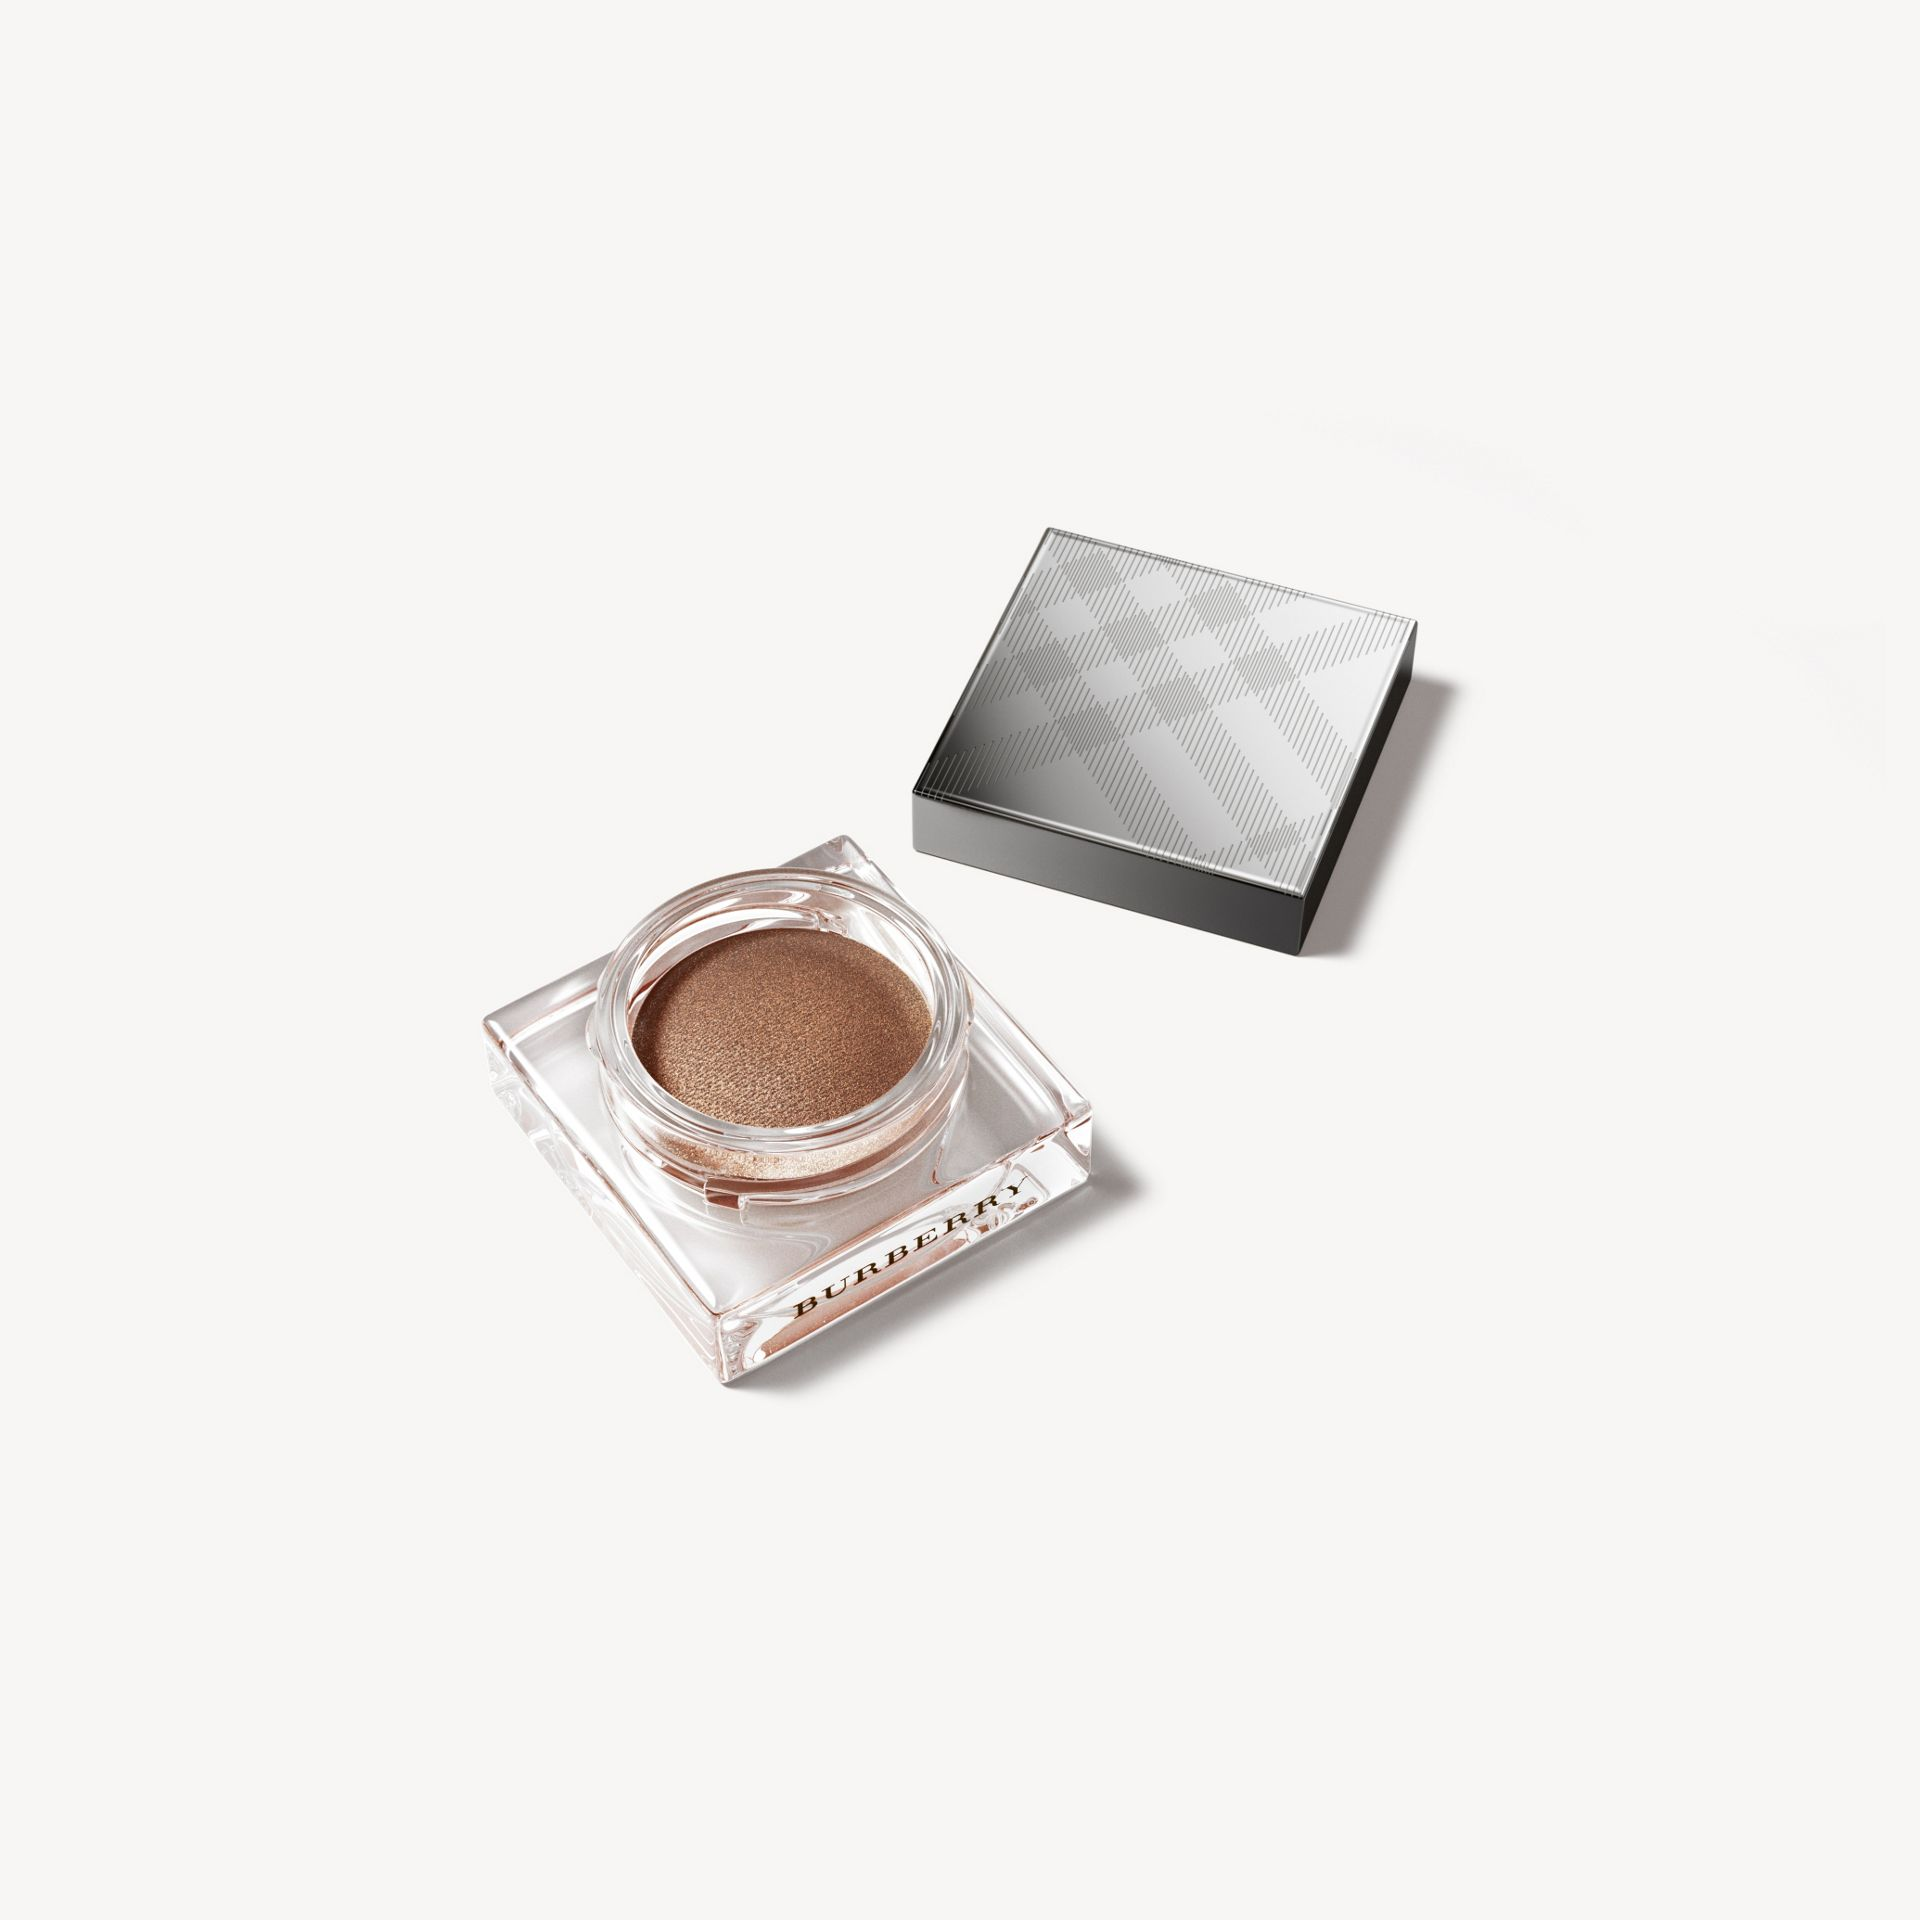 Тени для век Eye Colour Cream, оттенок Golden Brown № 98 (№) - Для женщин | Burberry - изображение 0